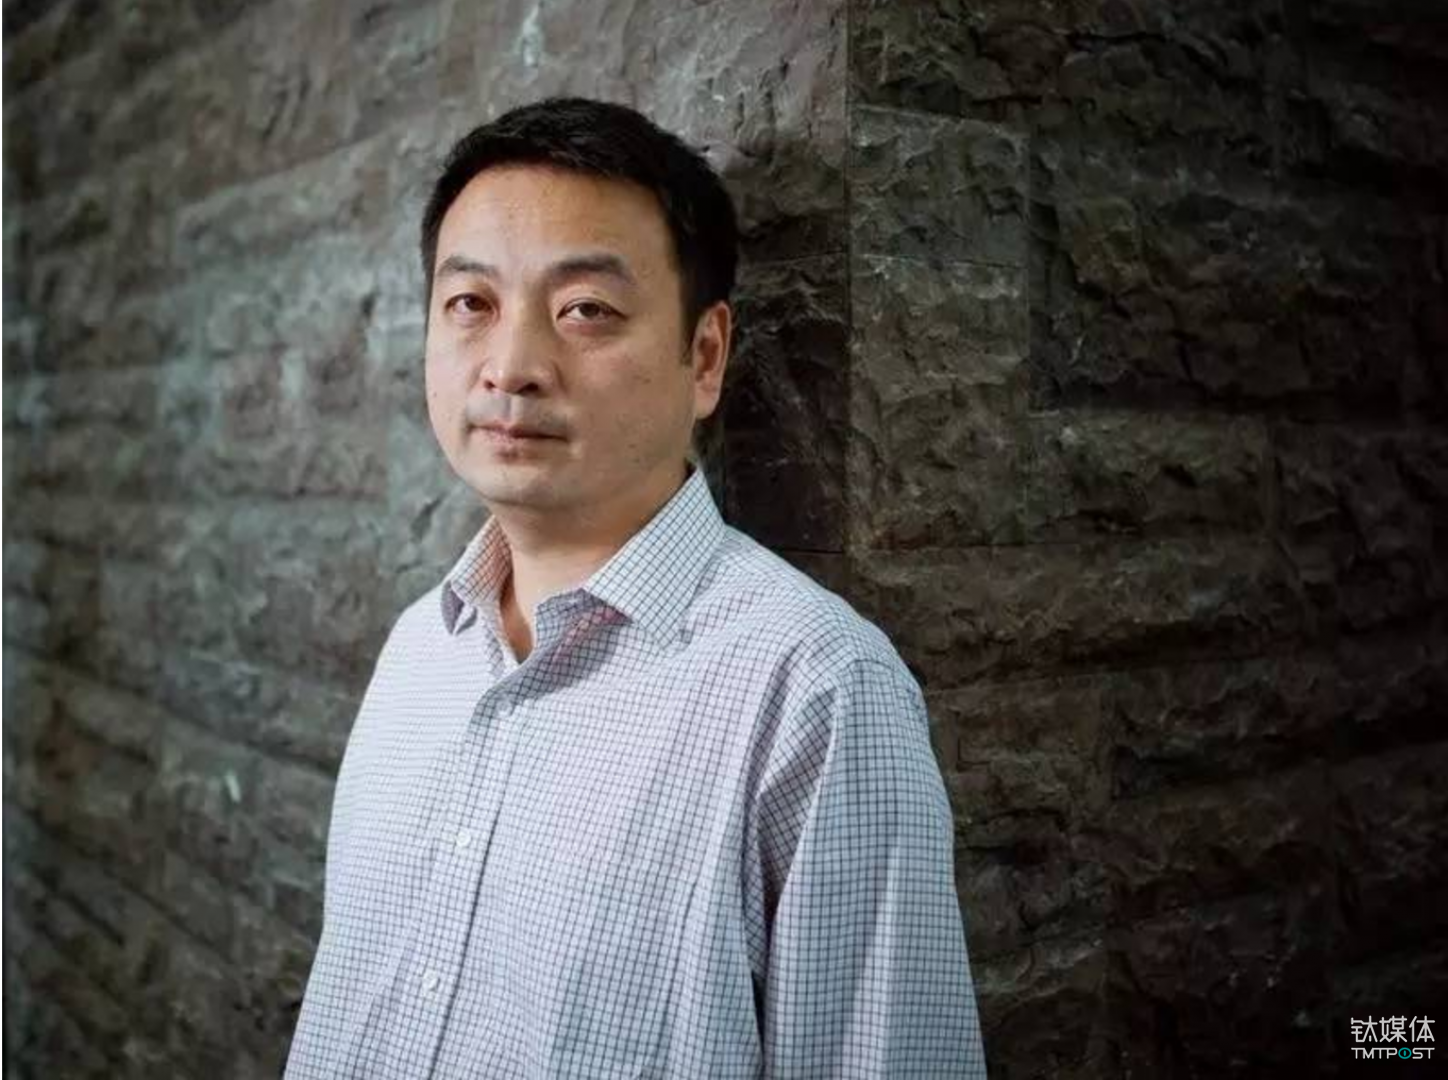 Liang Jianzhang, co-founder and former CEO of cTRIP